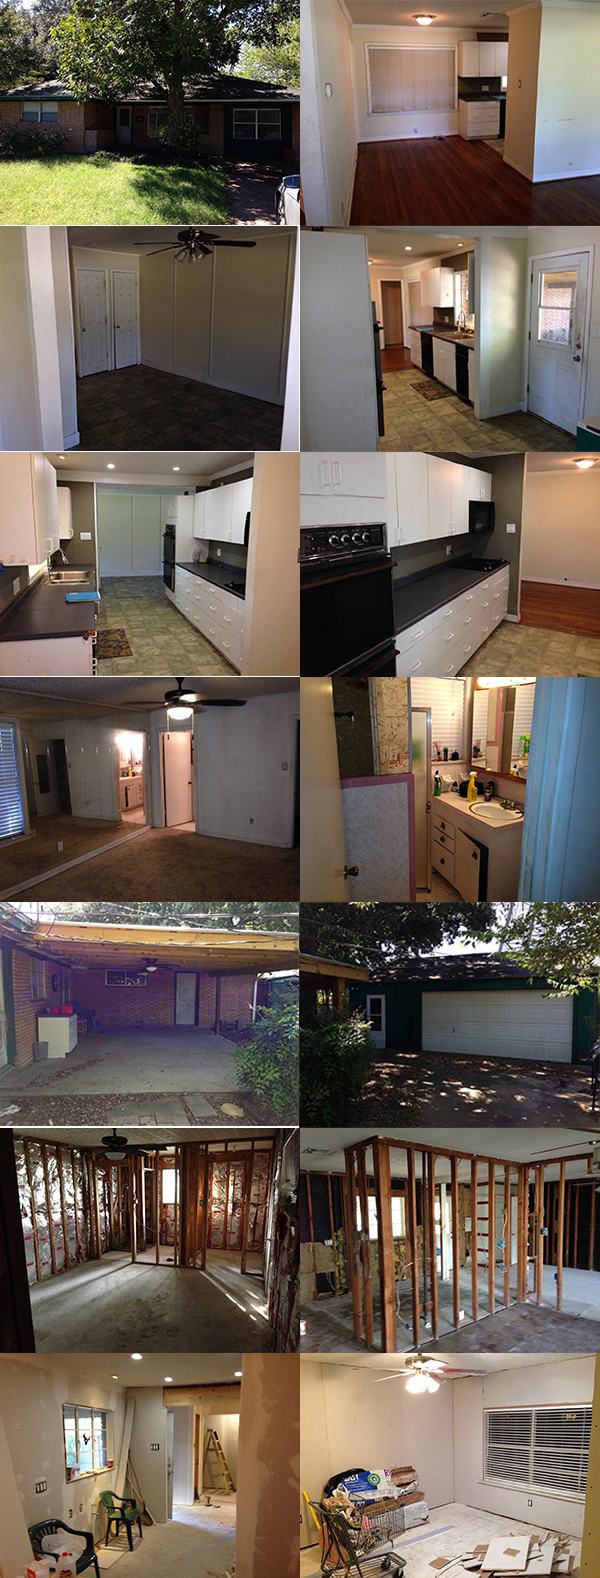 Before photos of #OliverHQ